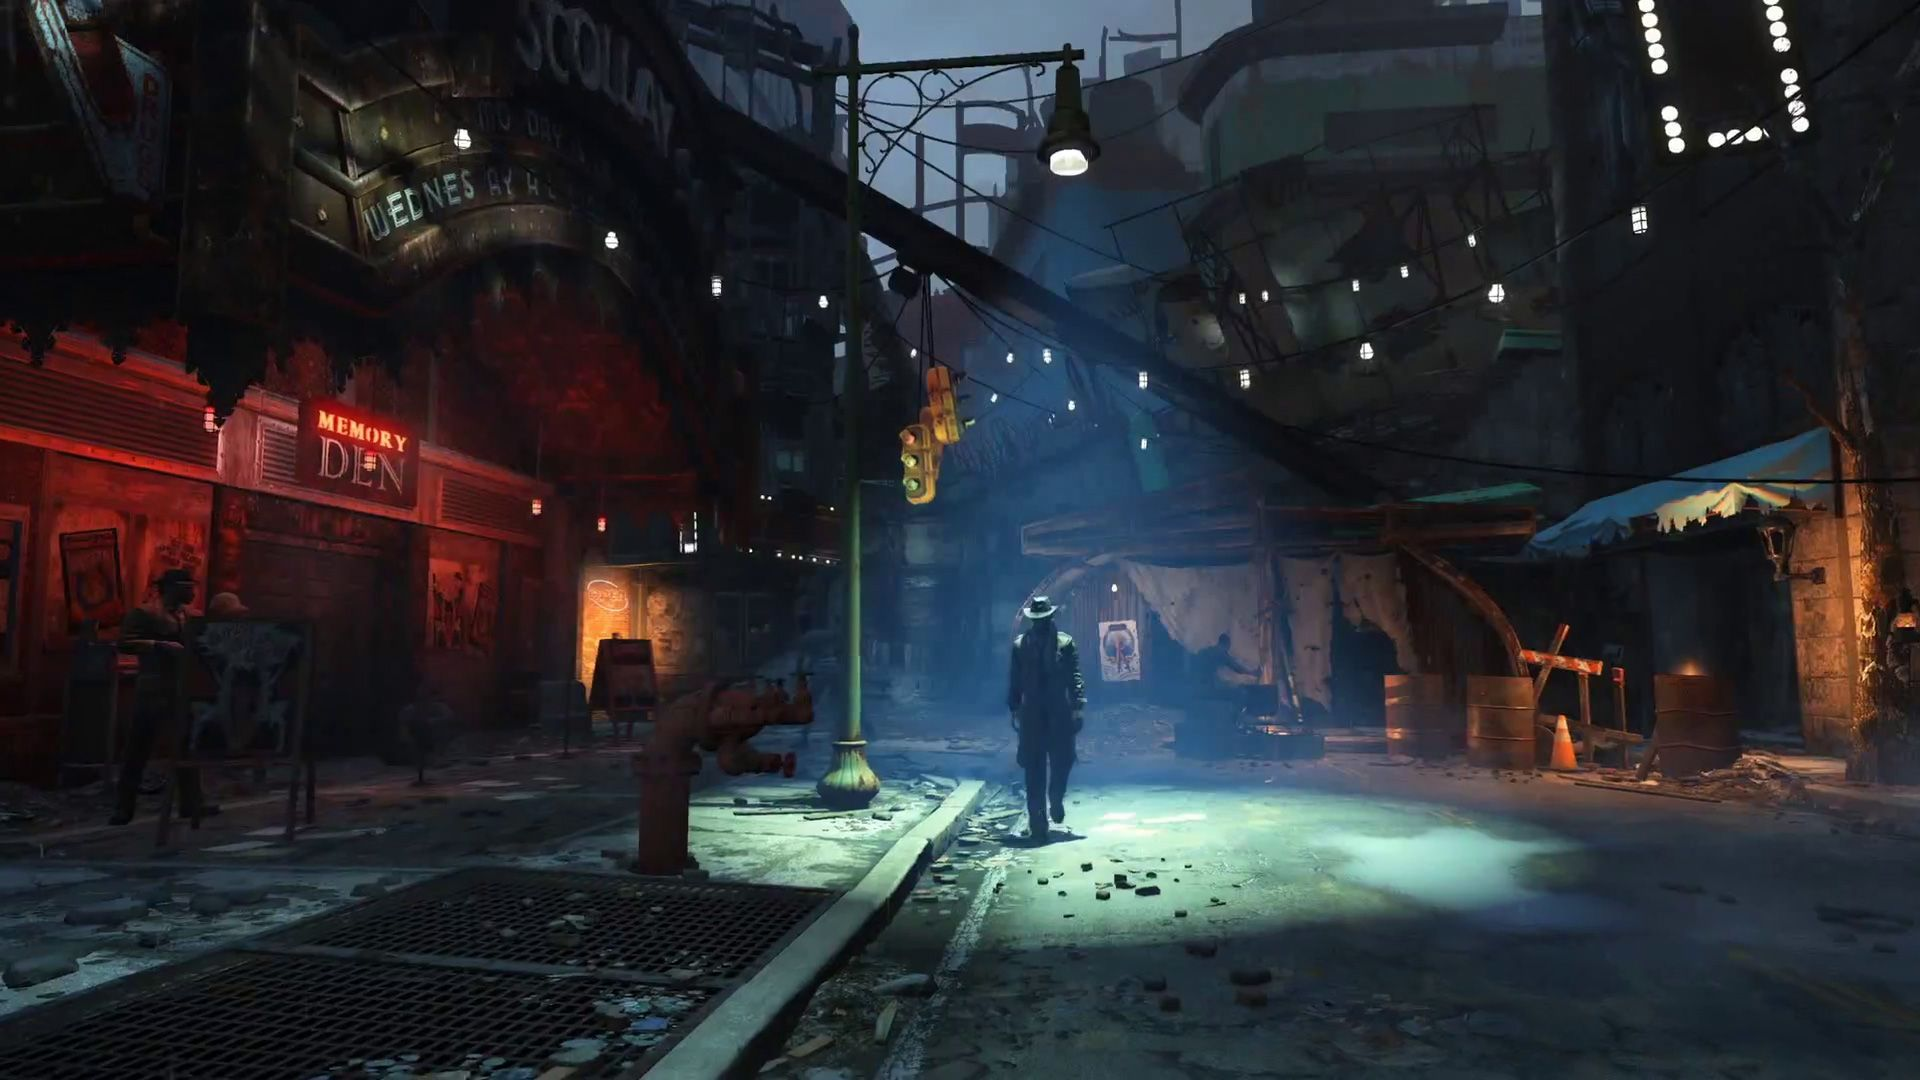 Fallout 4 VR might be already planned